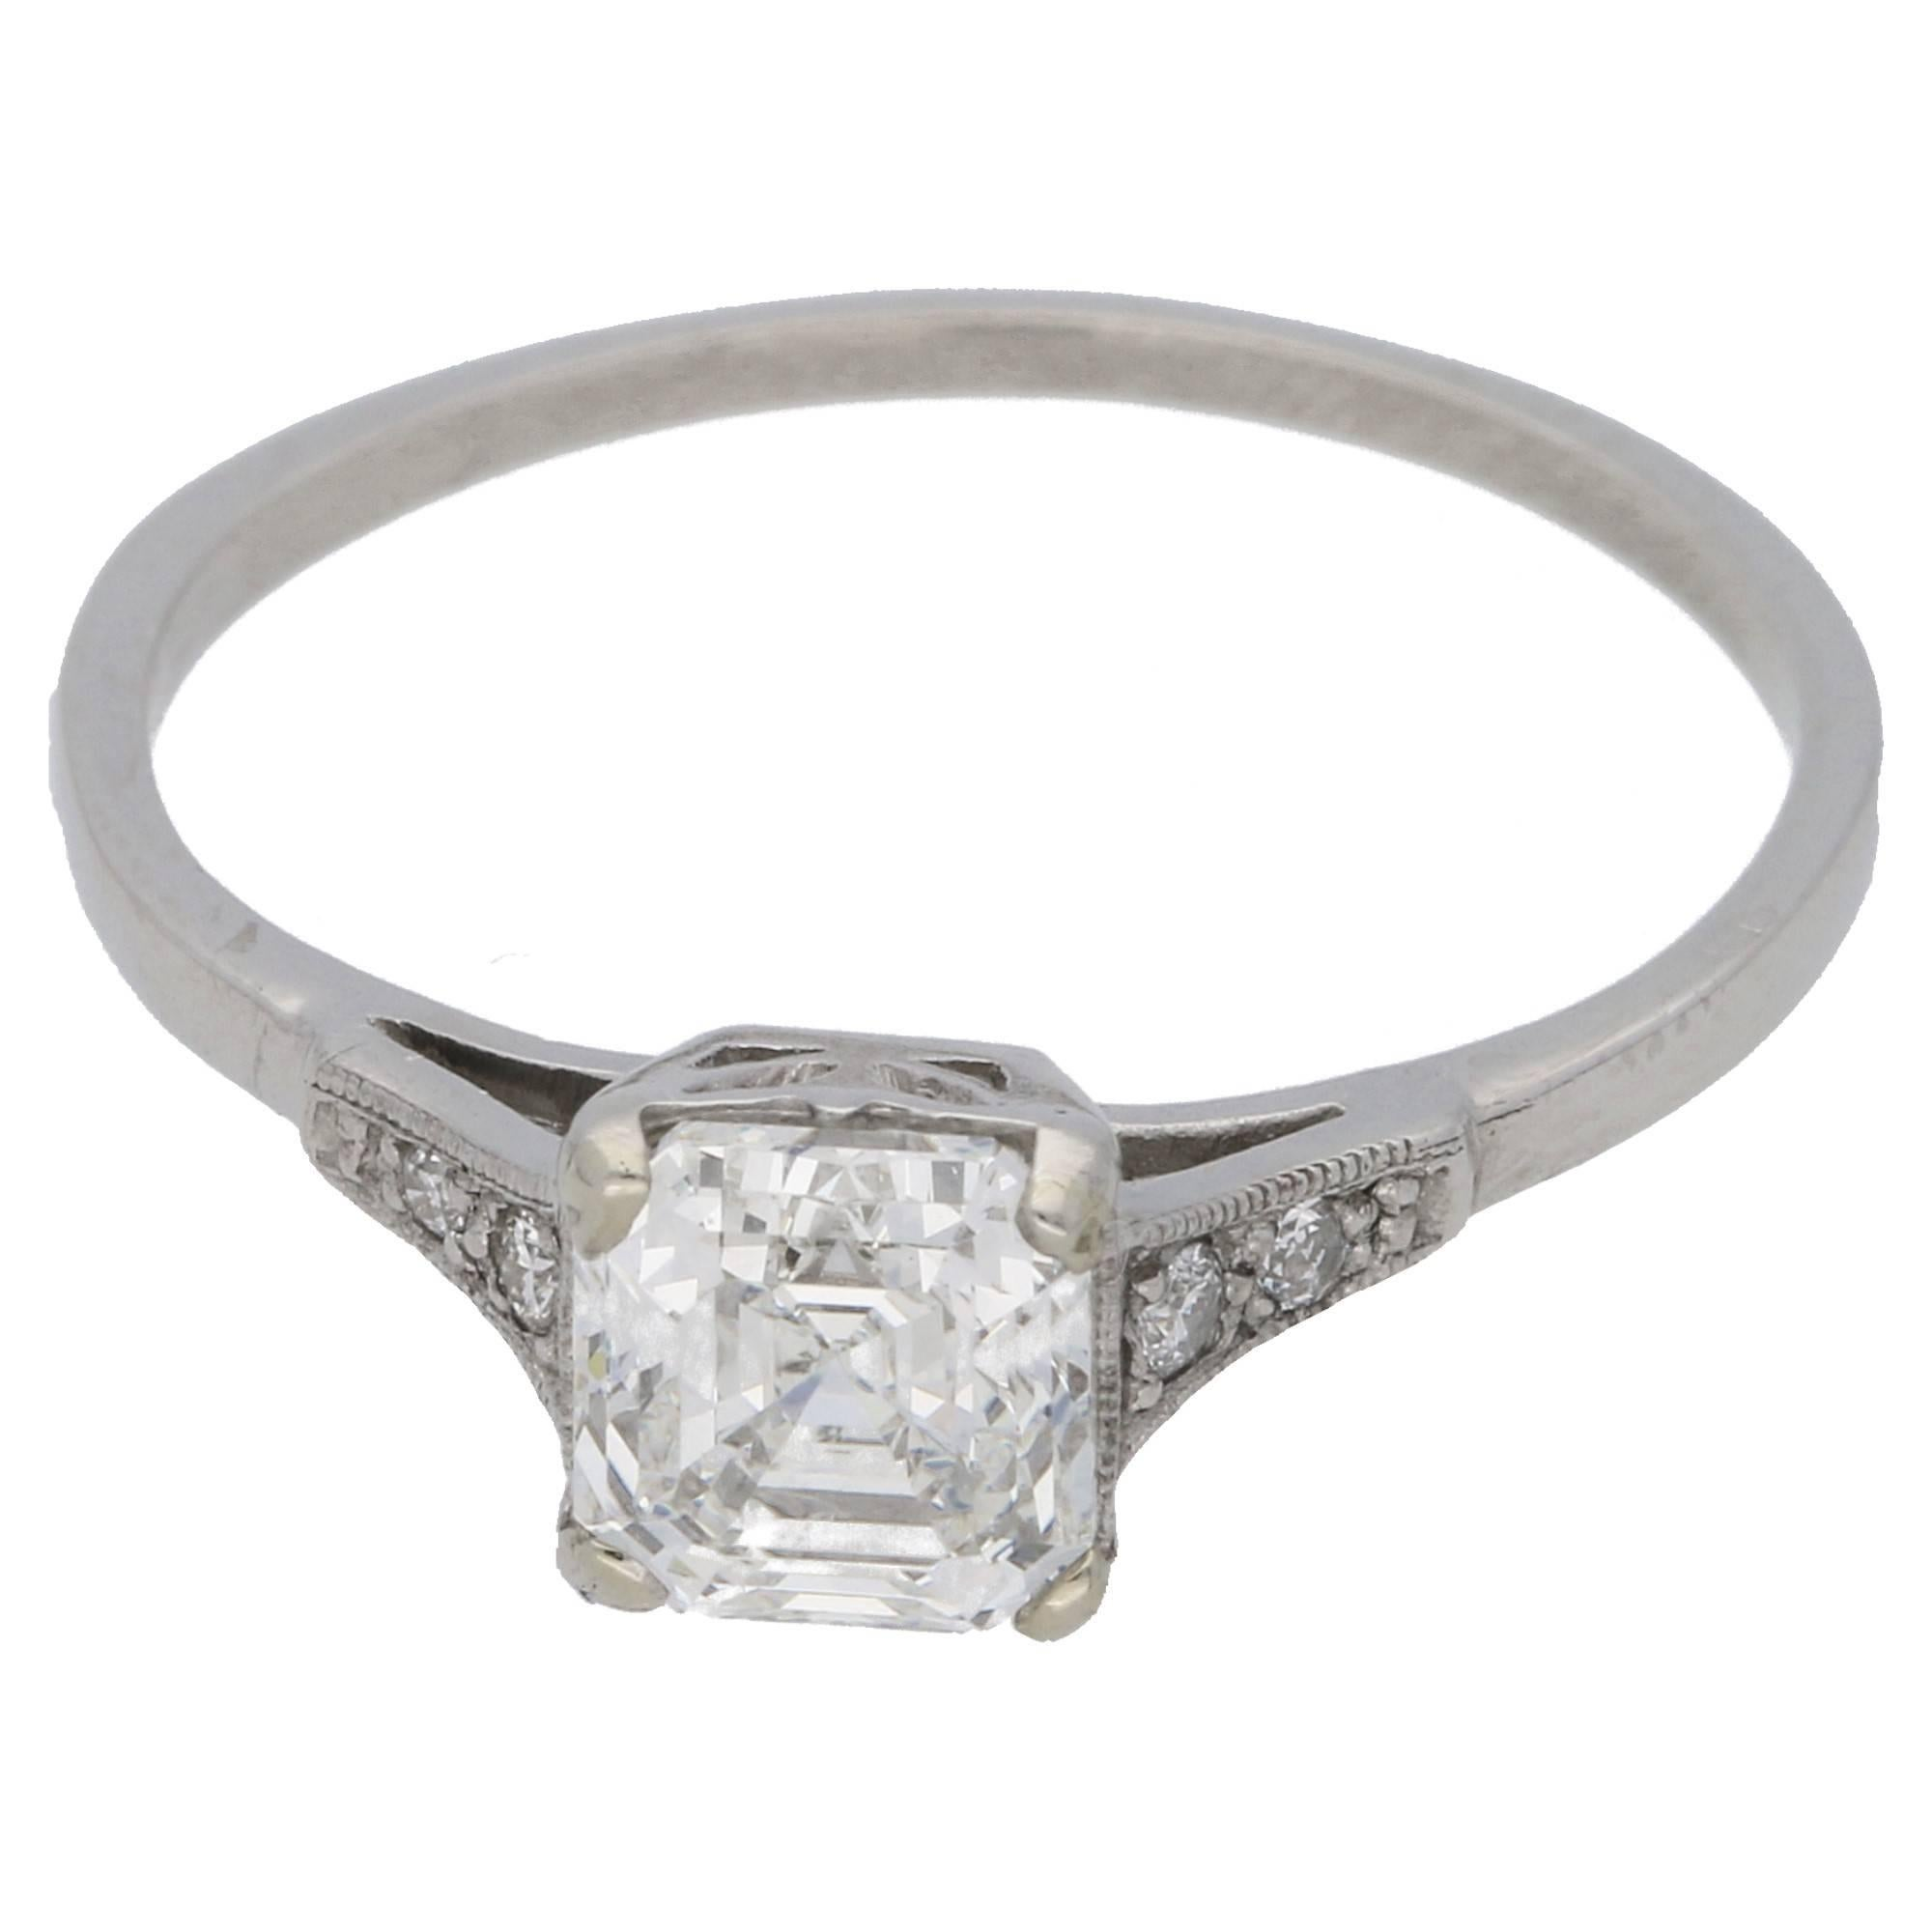 rose cut halo diamonds in mod rosalind assch asscher products forever one asher diamond vintage moissanite choice center of dia ring free conflict moiss engagement